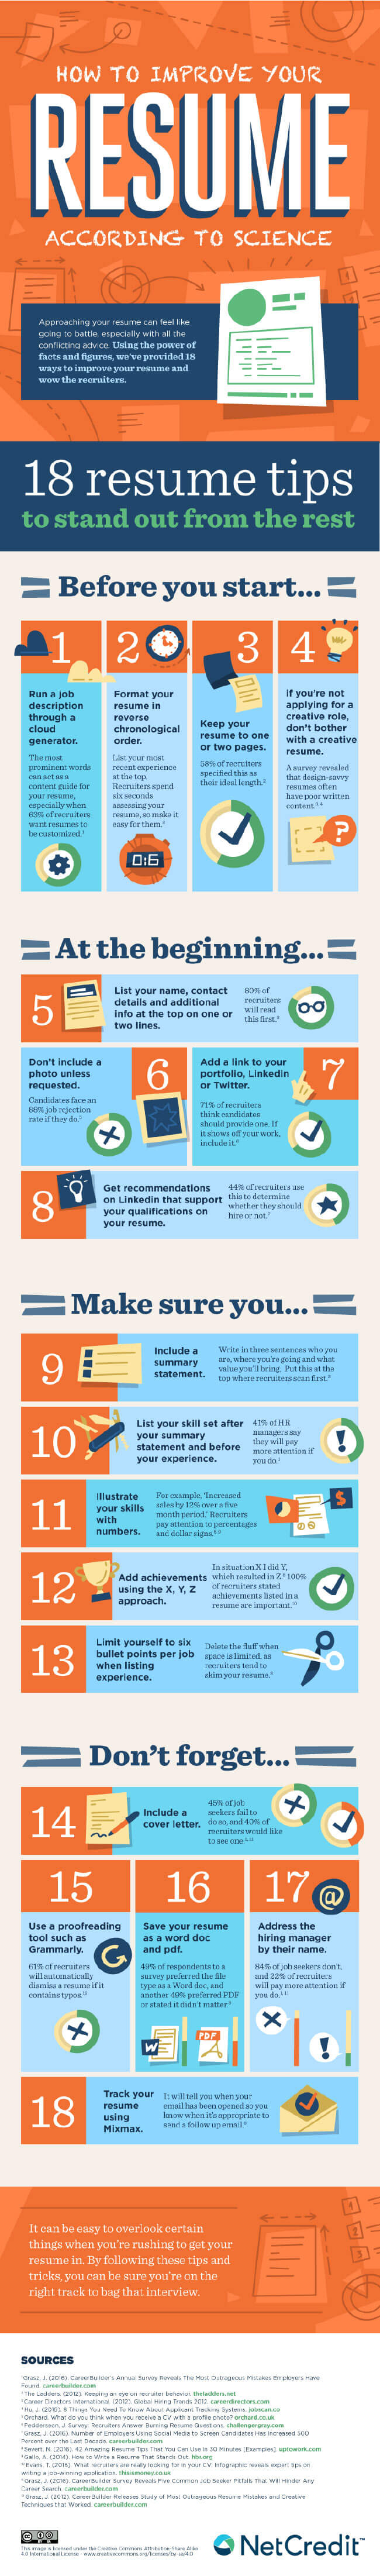 Image titled how to improve your resume according to science